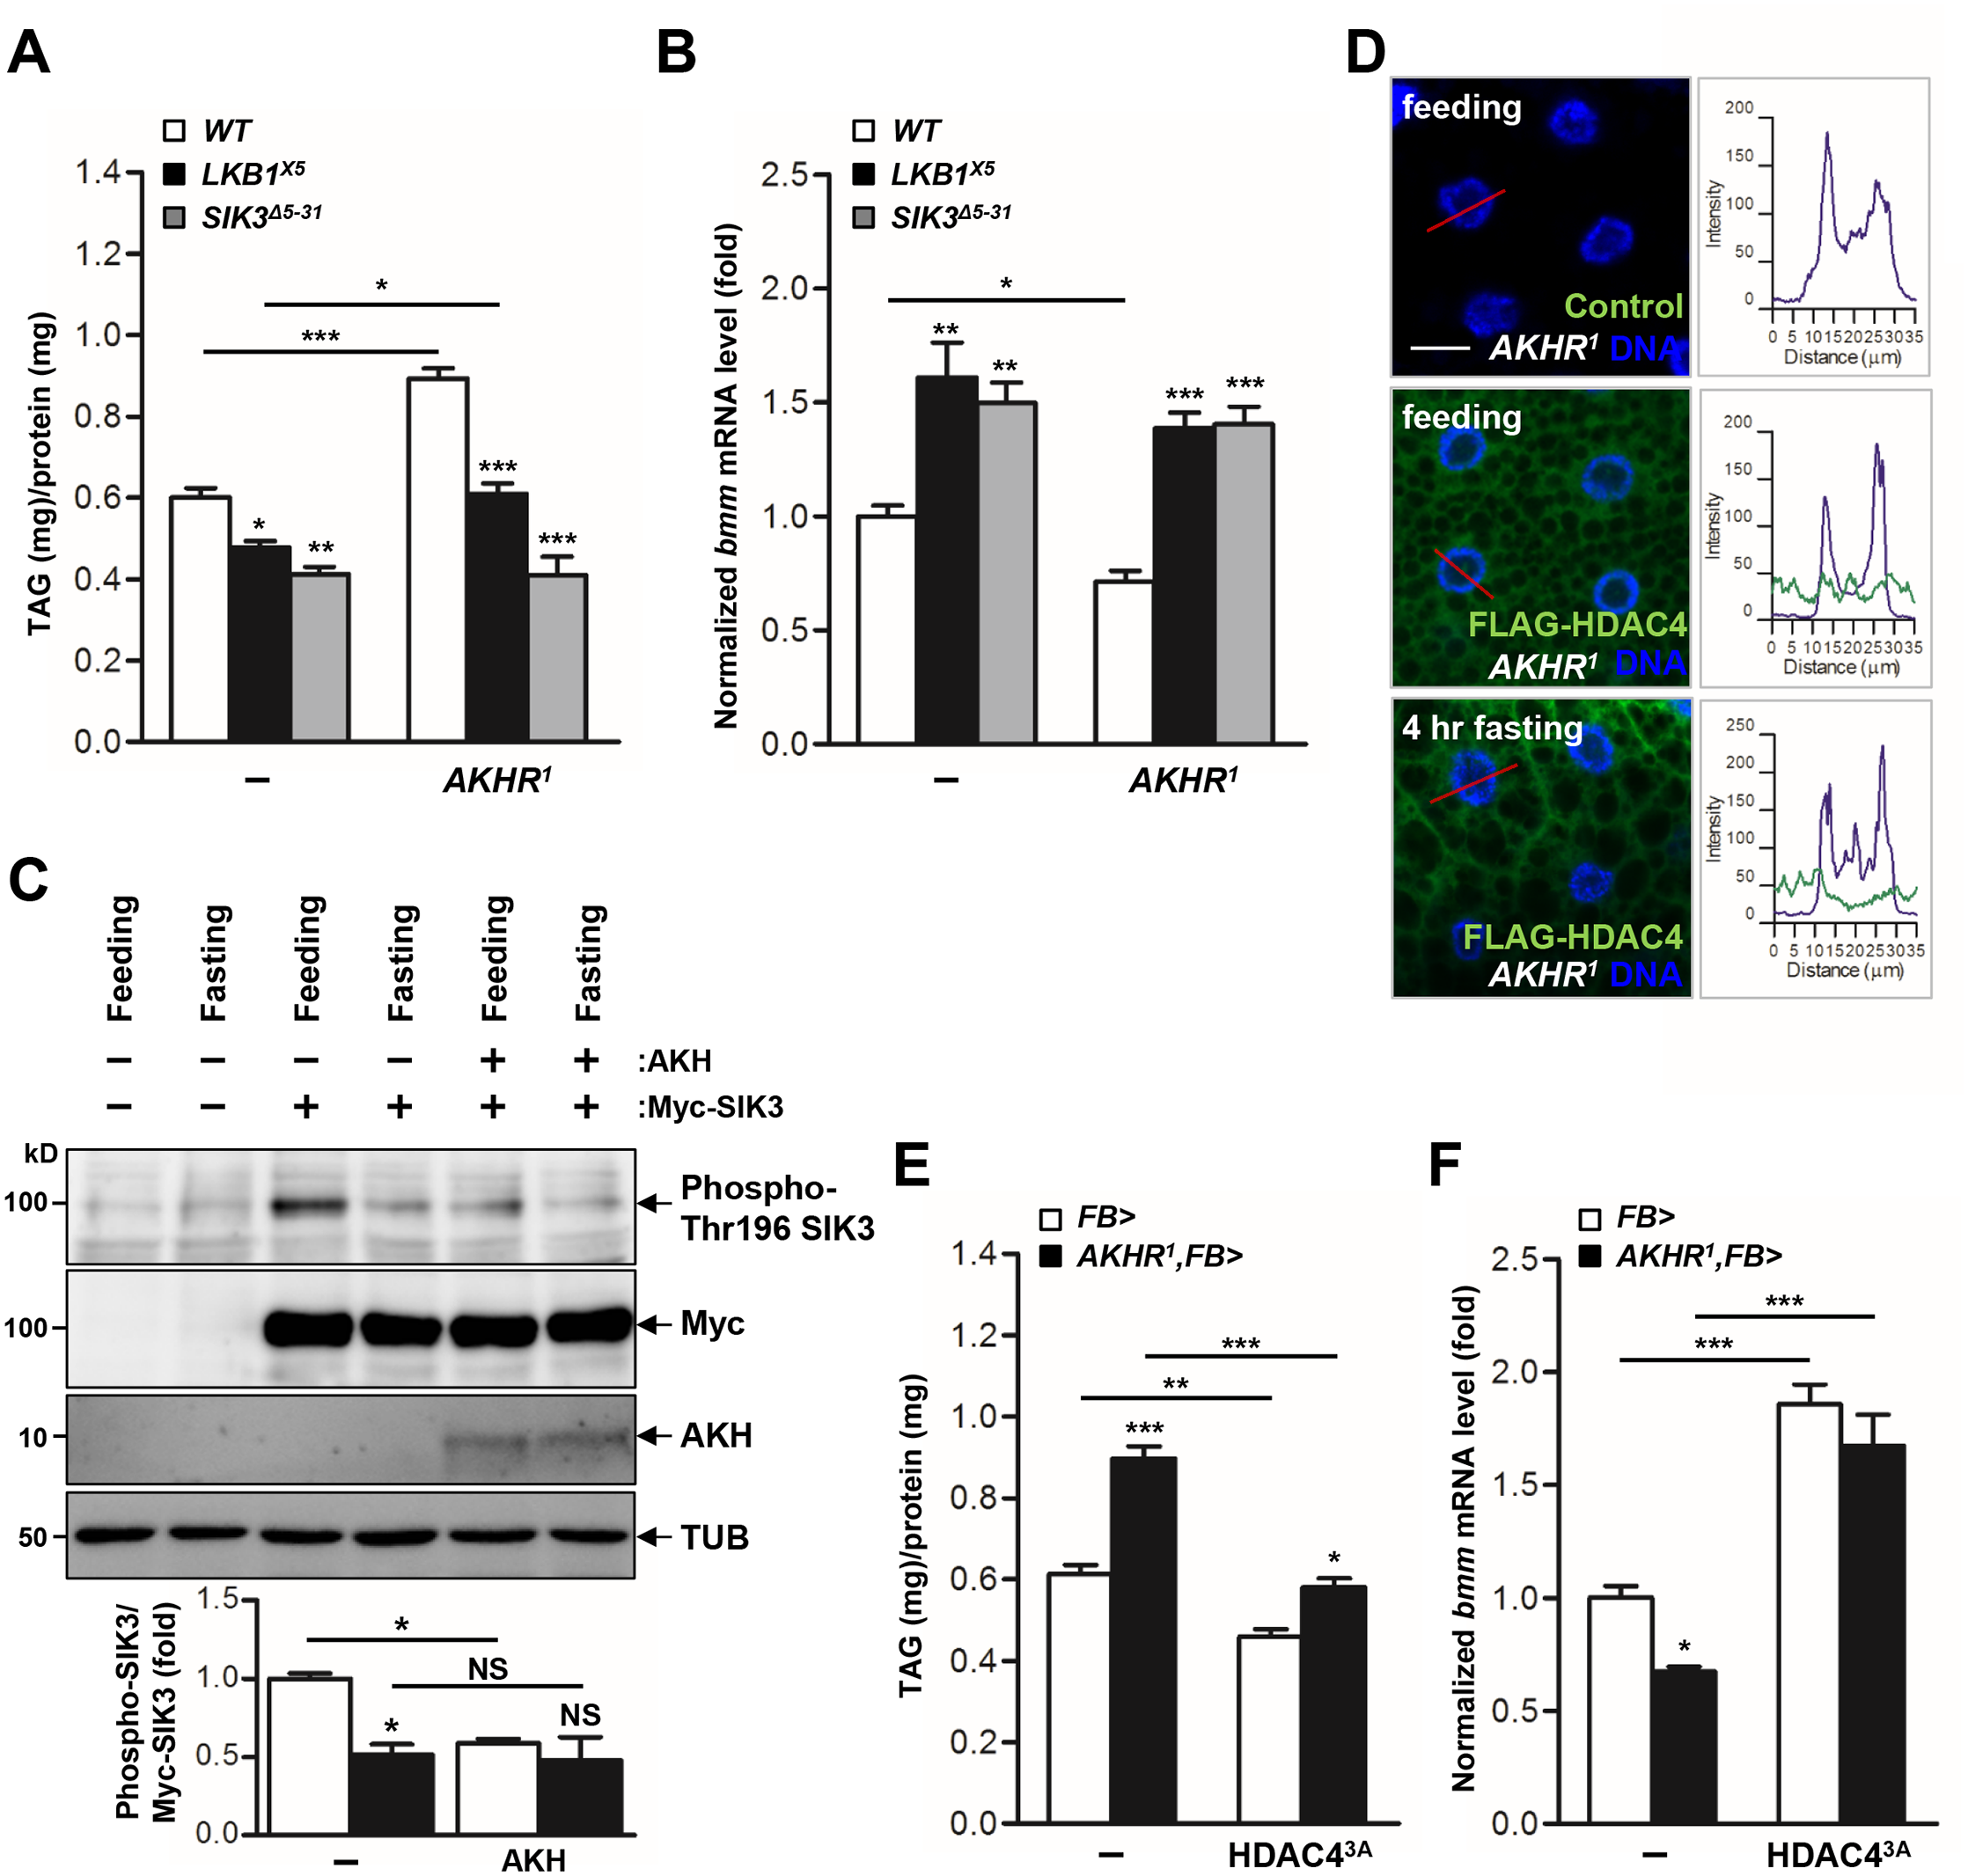 The AKH pathway regulates LKB1-SIK3-HDAC4 signaling to control lipid homeostasis.